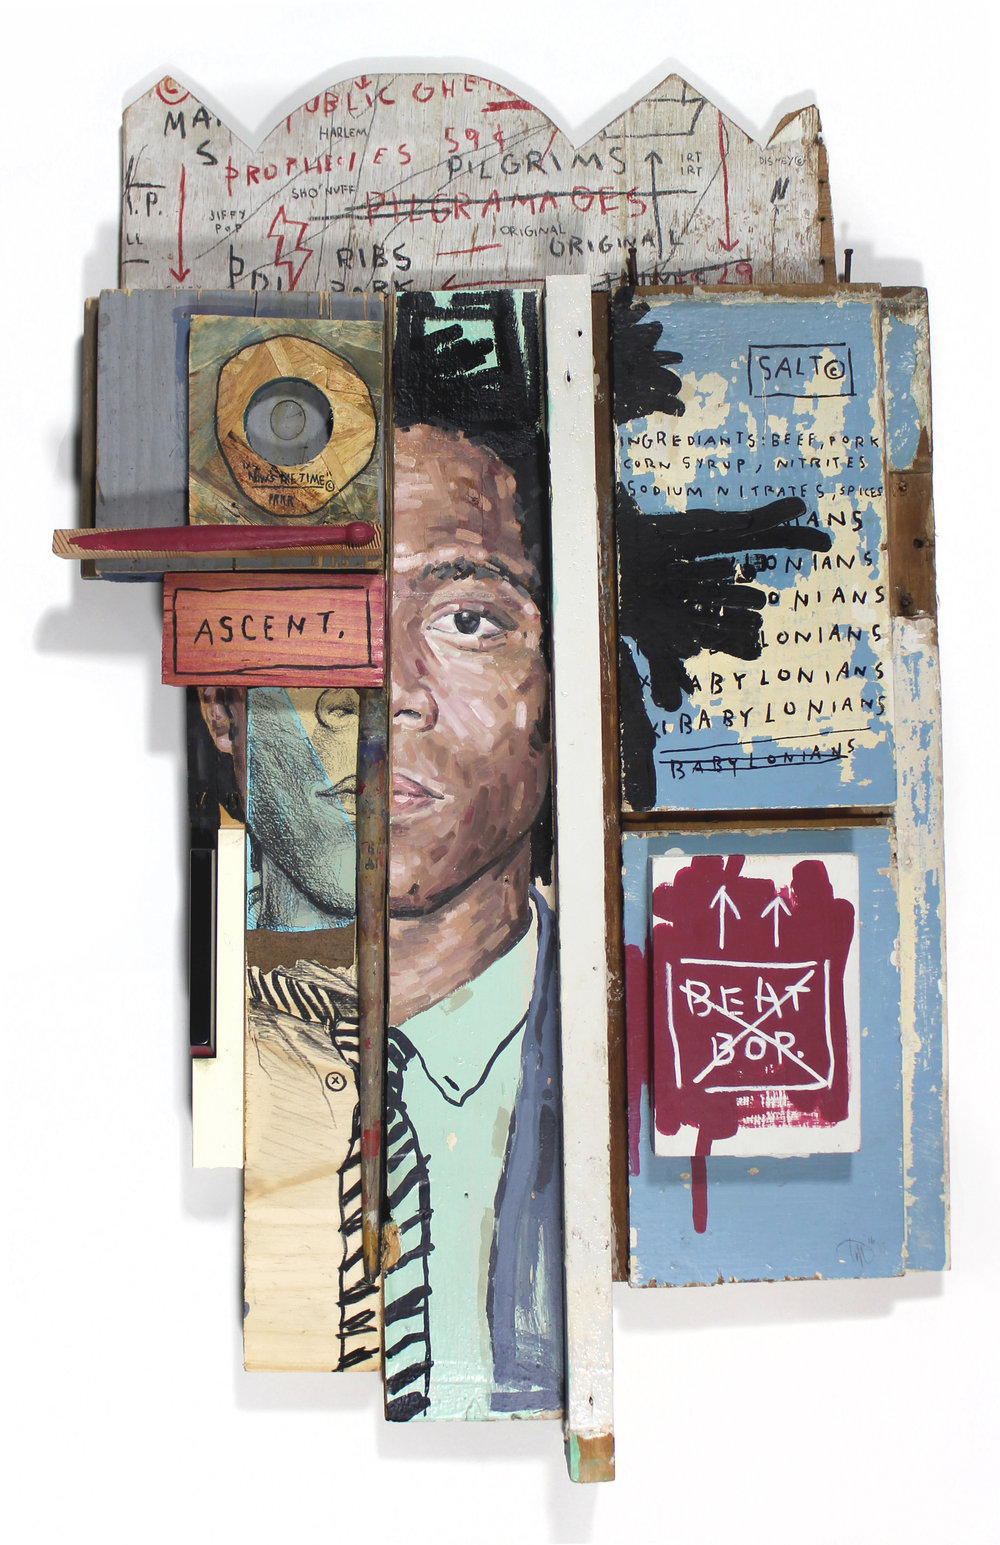 Jean-Michel Basquiat (The Price of Salt) edit.jpg